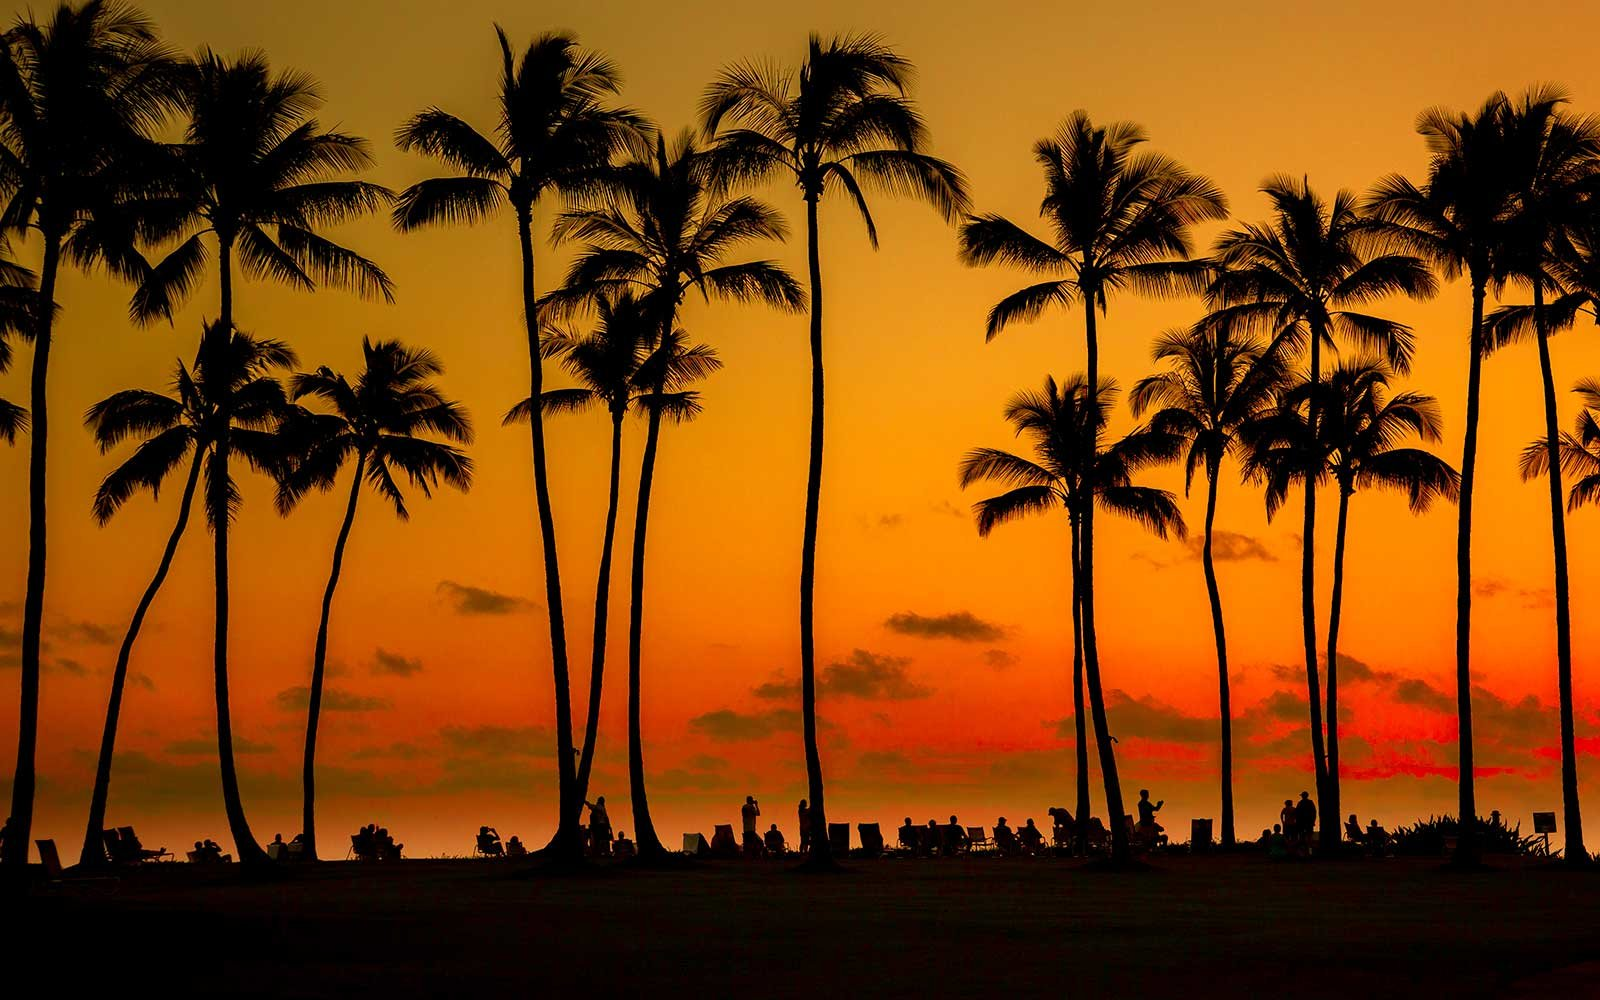 poipu-hawaii-palm-sunset-EXPENSIVE0217.jpg